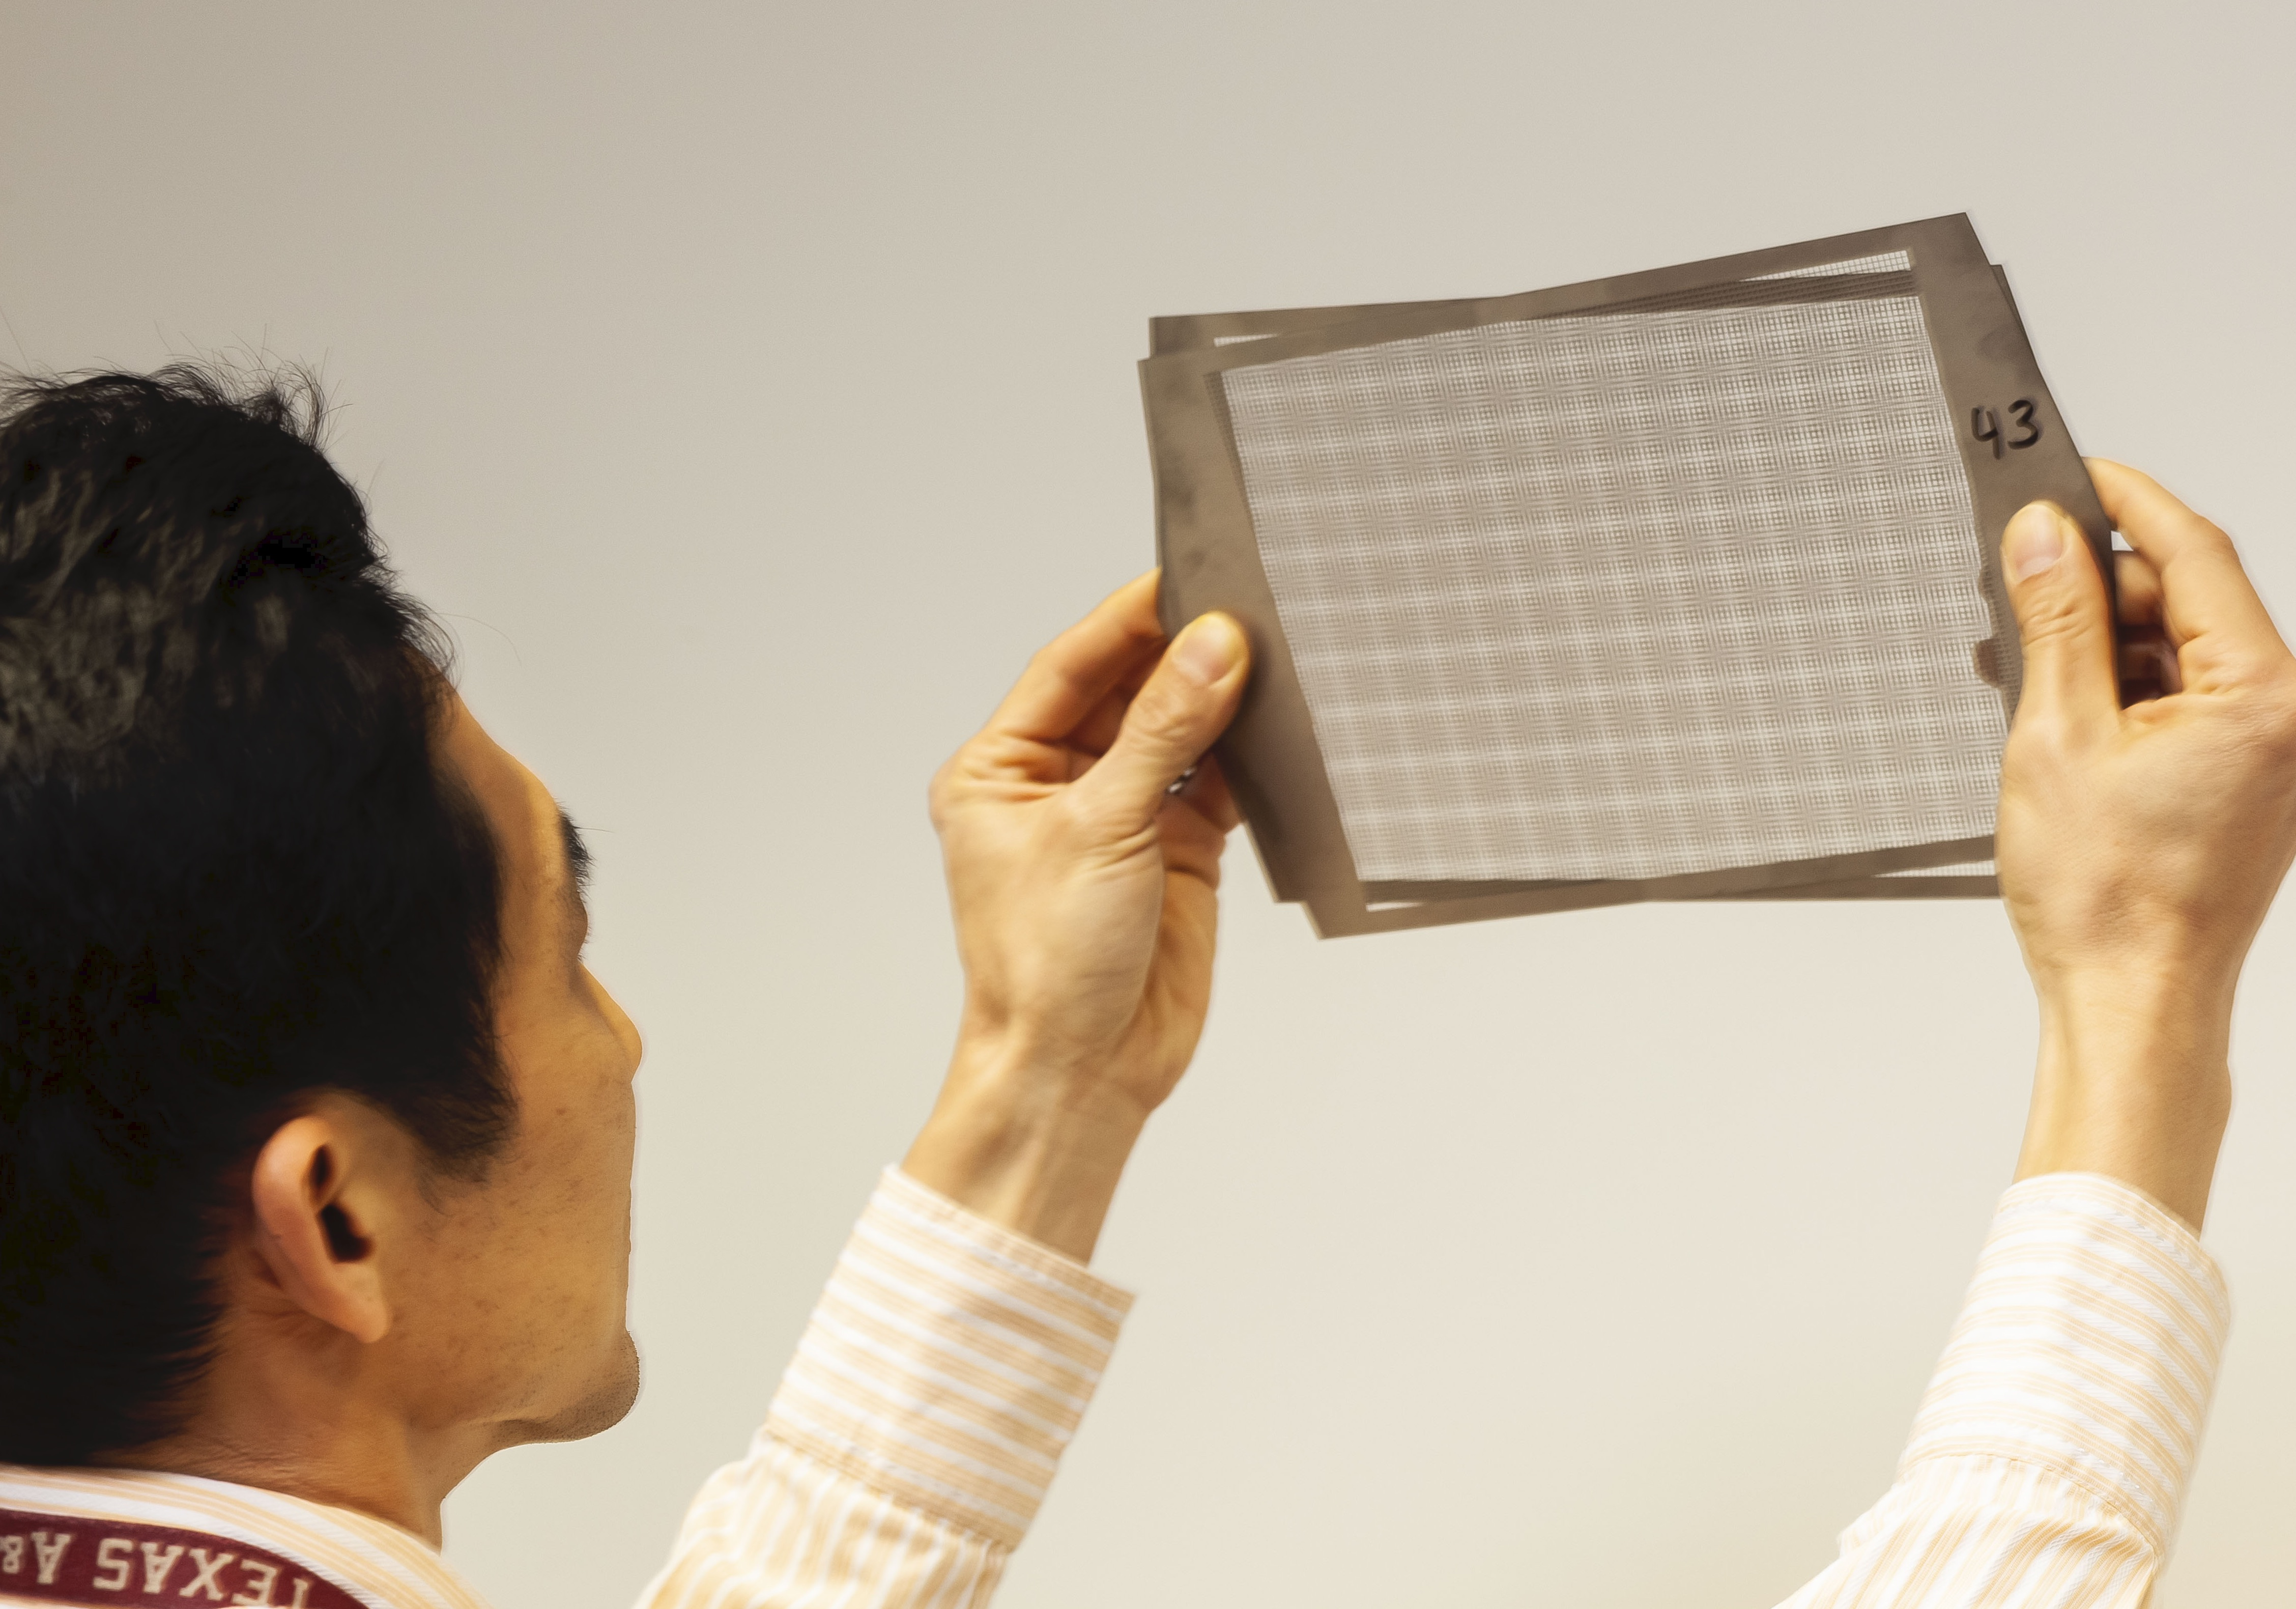 An inventor inspects components of a device that he invented